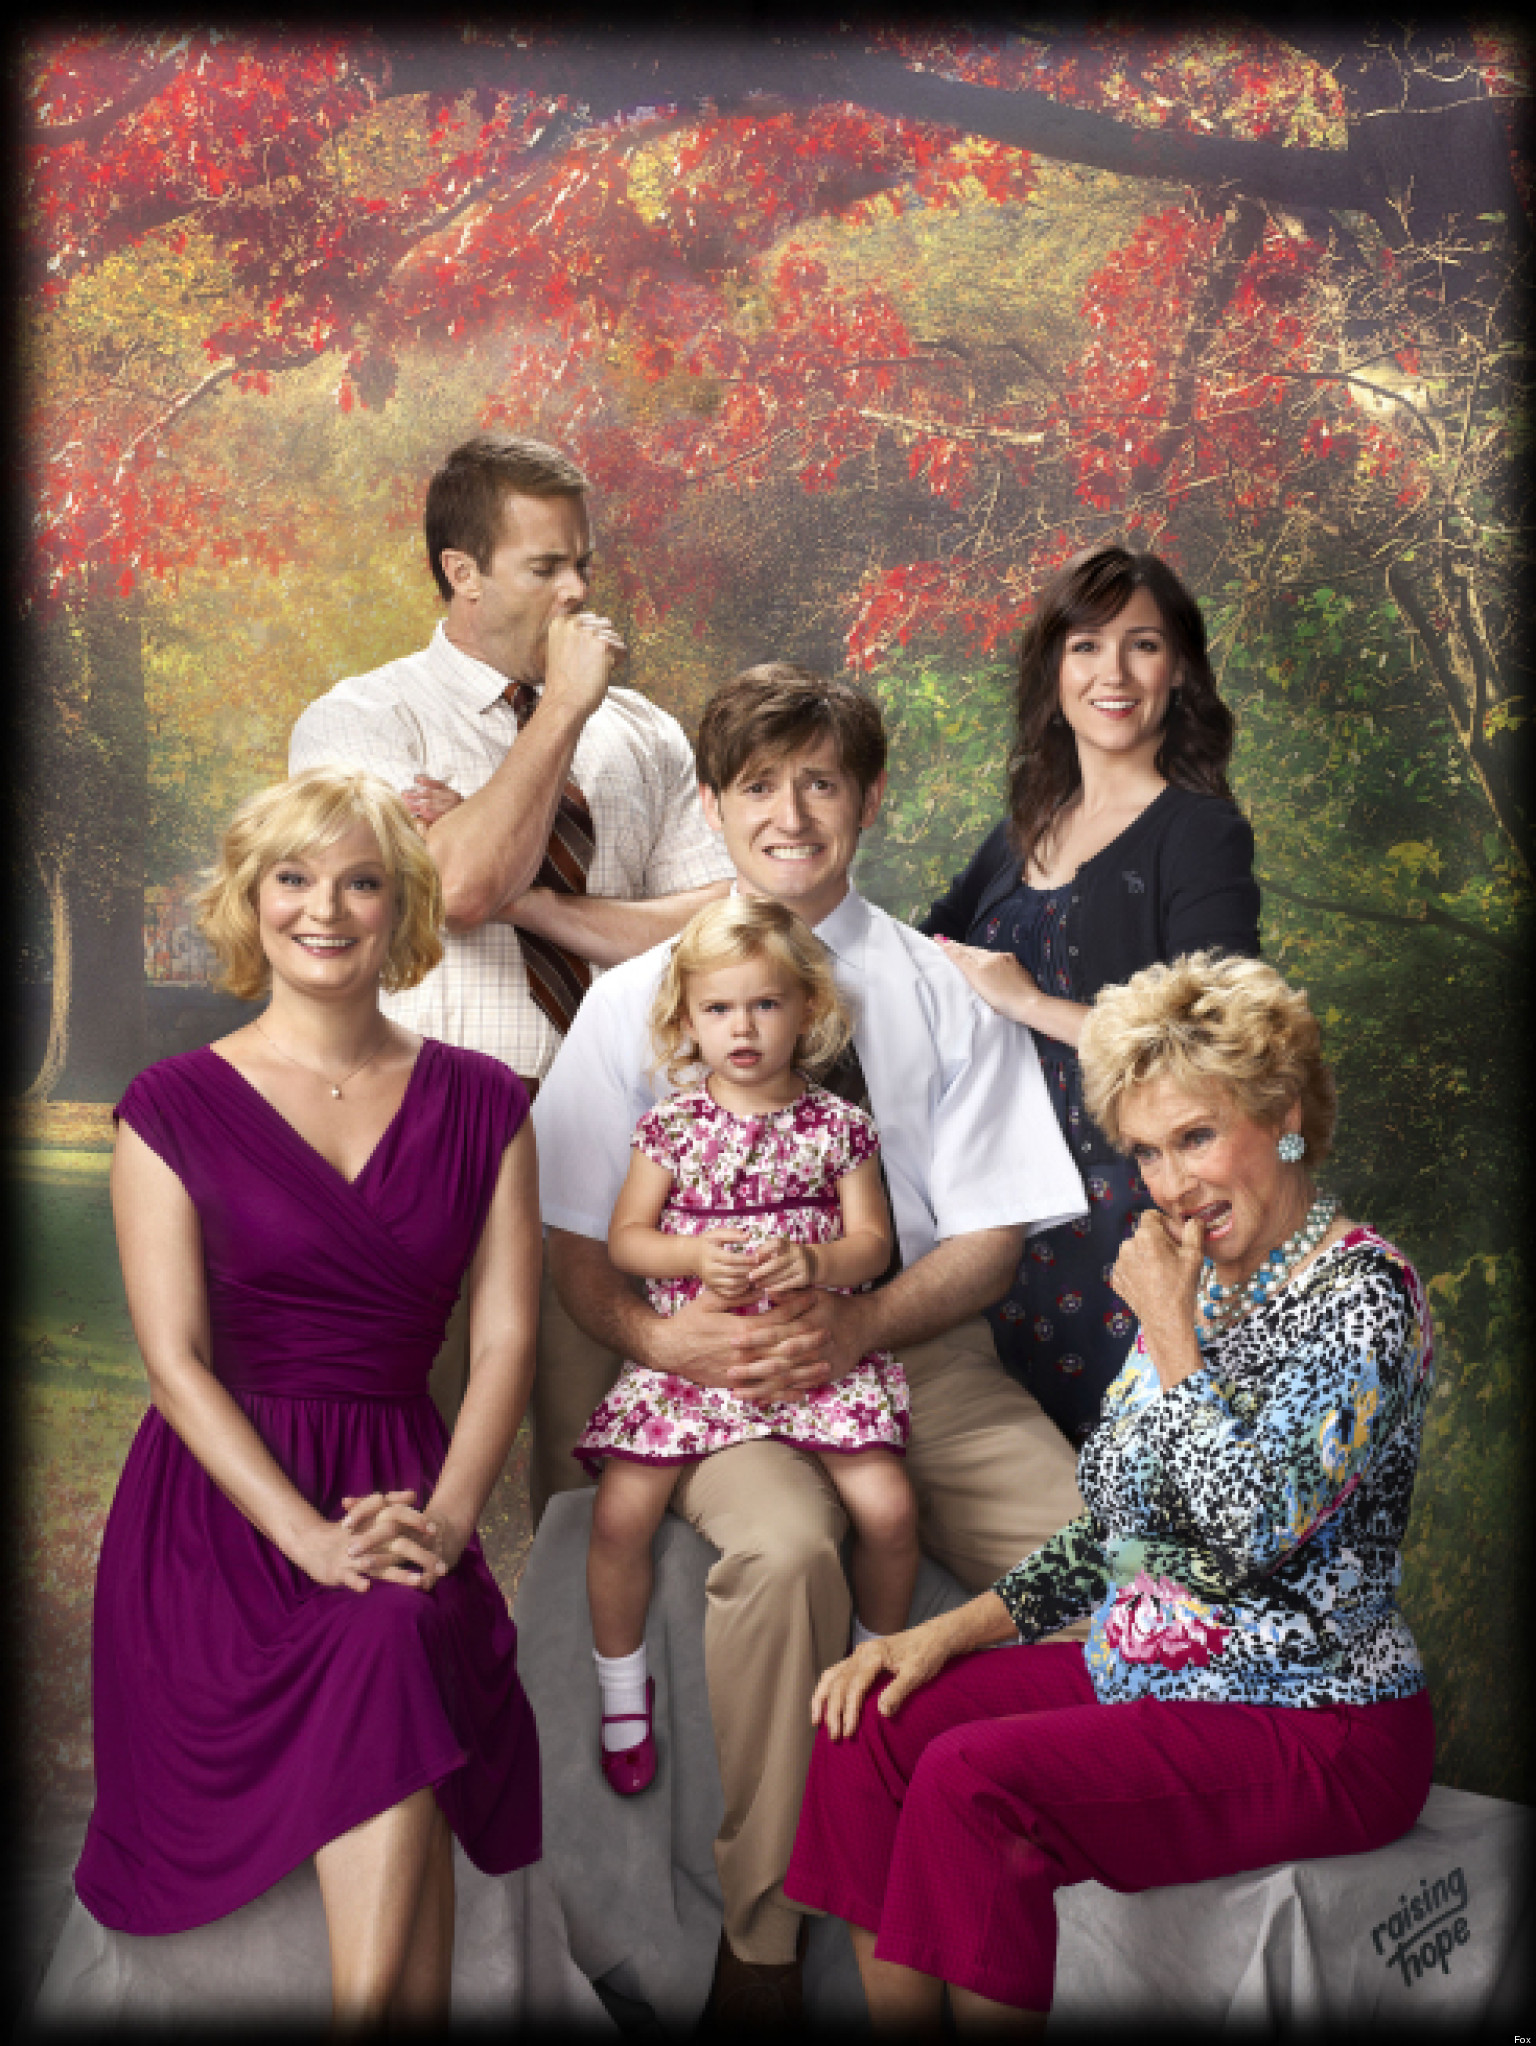 'Raising Hope' To Feature 'Yes, Dear' Reunion And More ... Raising Hope